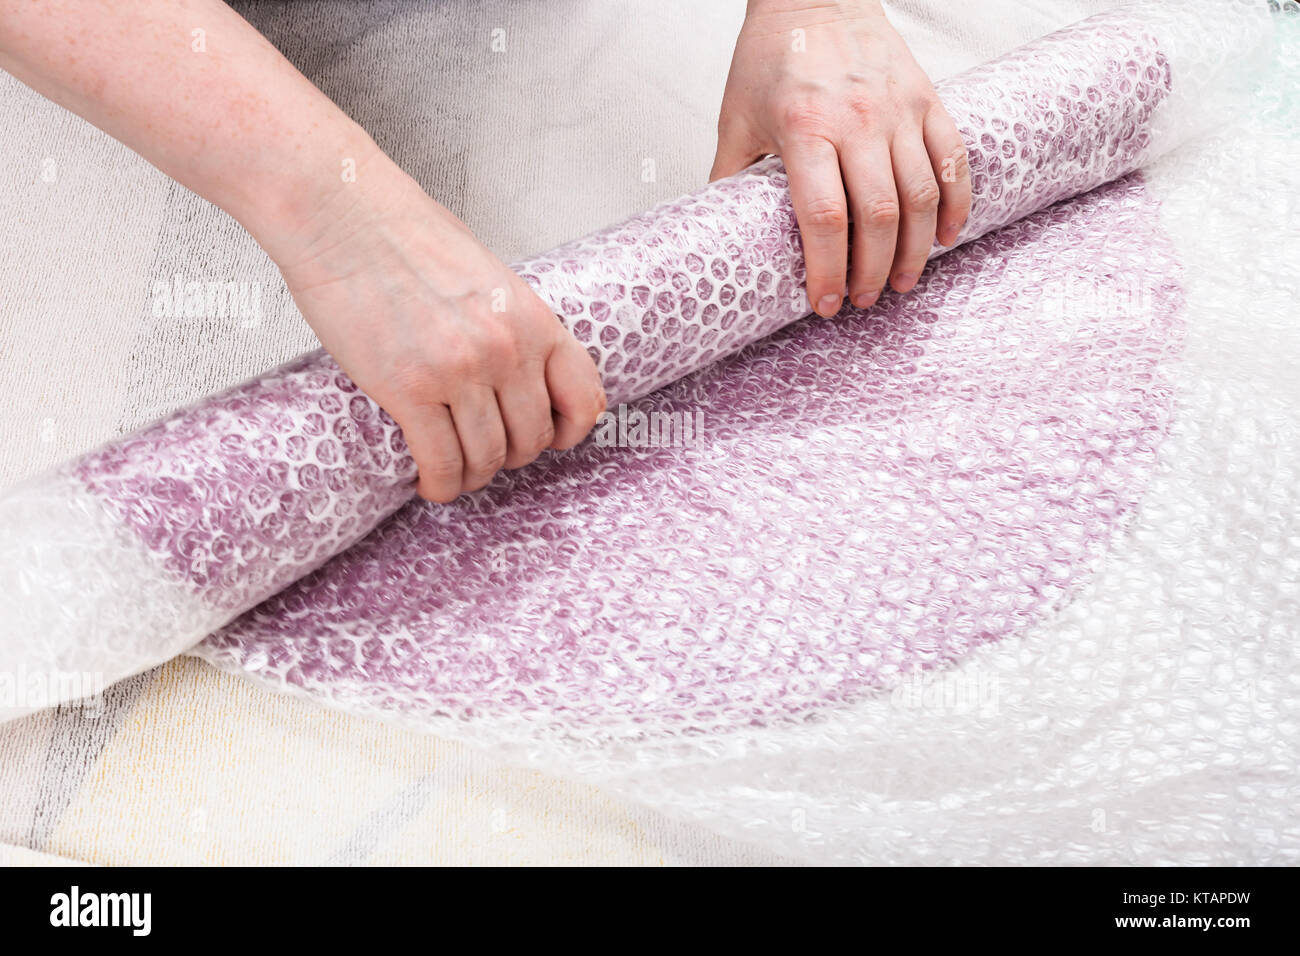 hatter rolls the wool fibers with hat layout - Stock Image